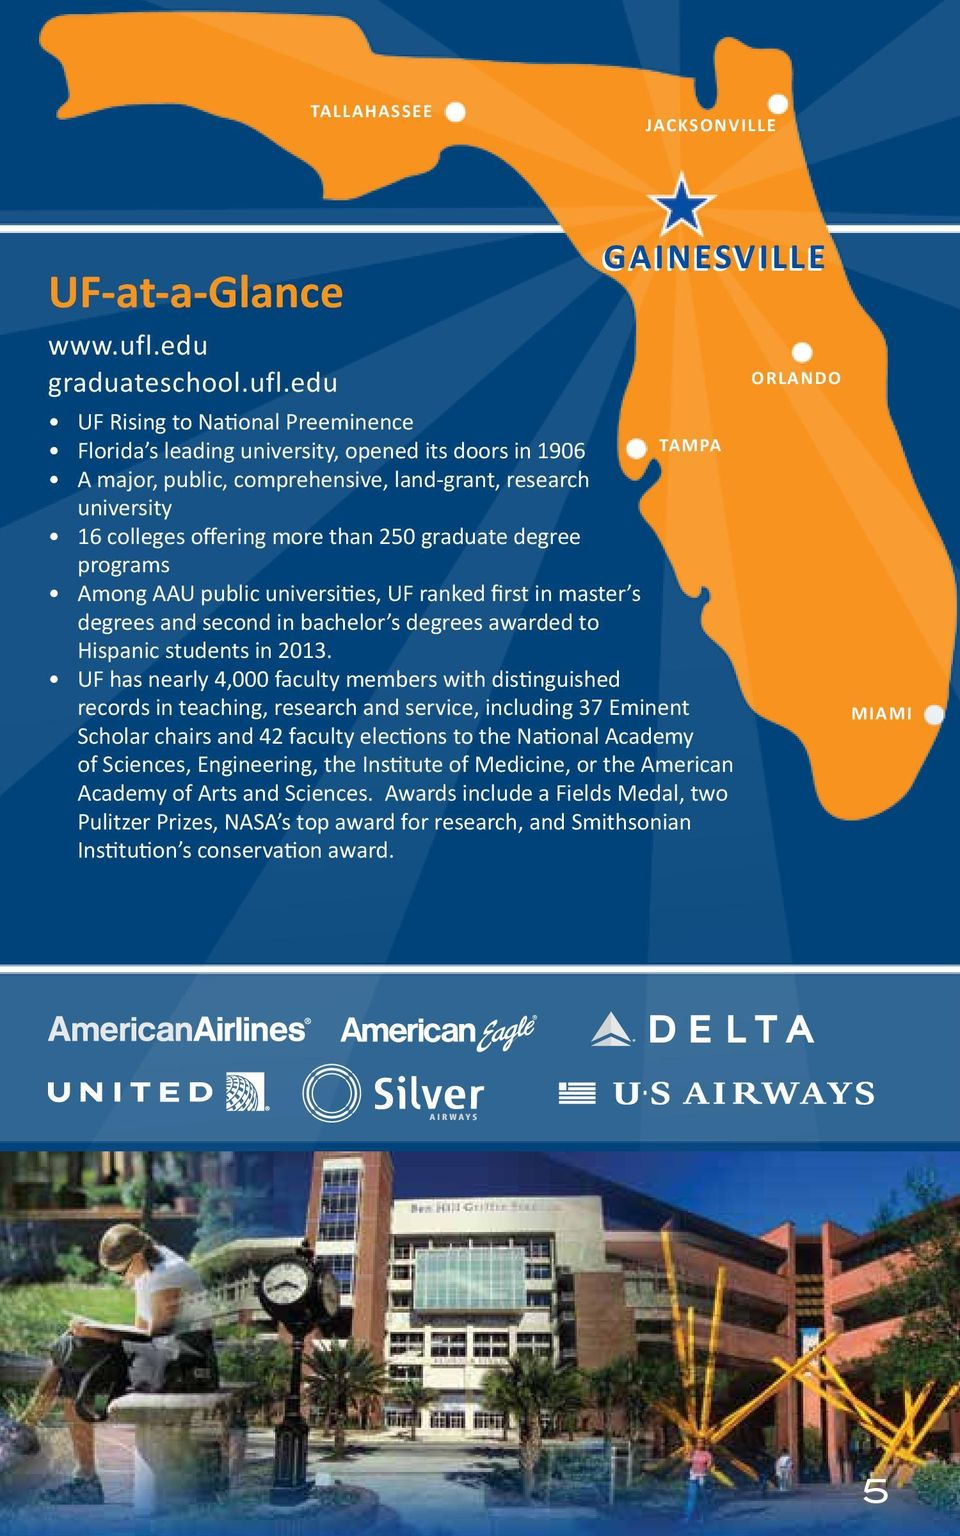 edu UF Rising to National Preeinence Florida s leading university, opened its doors in 1906 Tapa A ajor, public, coprehensive, land-grant, research university 16 colleges offering ore than 250